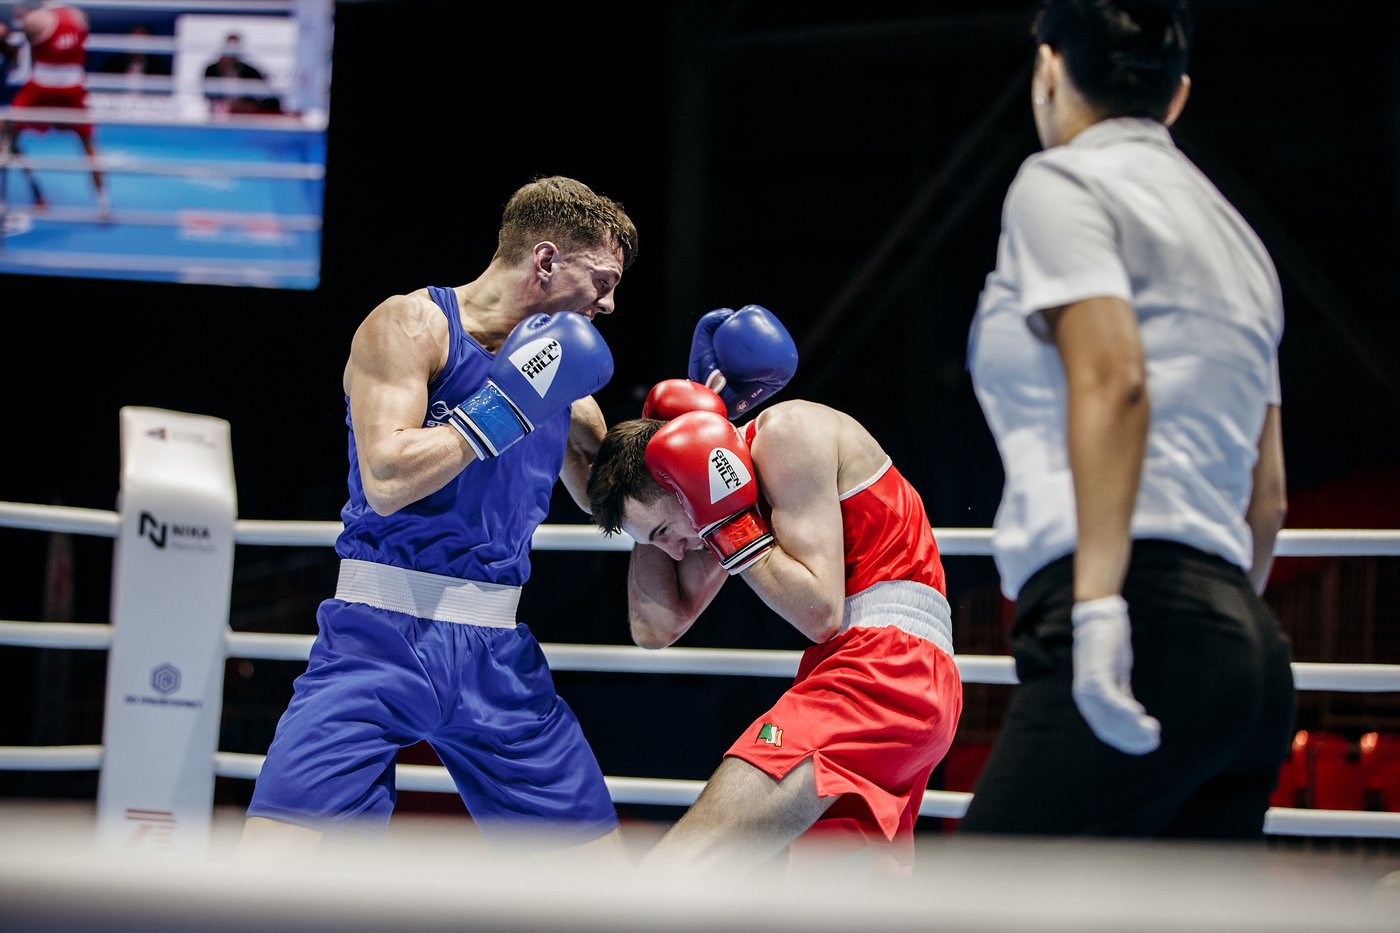 European and Commonwealth champion Pat McCormack of England had a difficult clash with Irish rival Aidan Walsh ©Yekaterinburg 2019